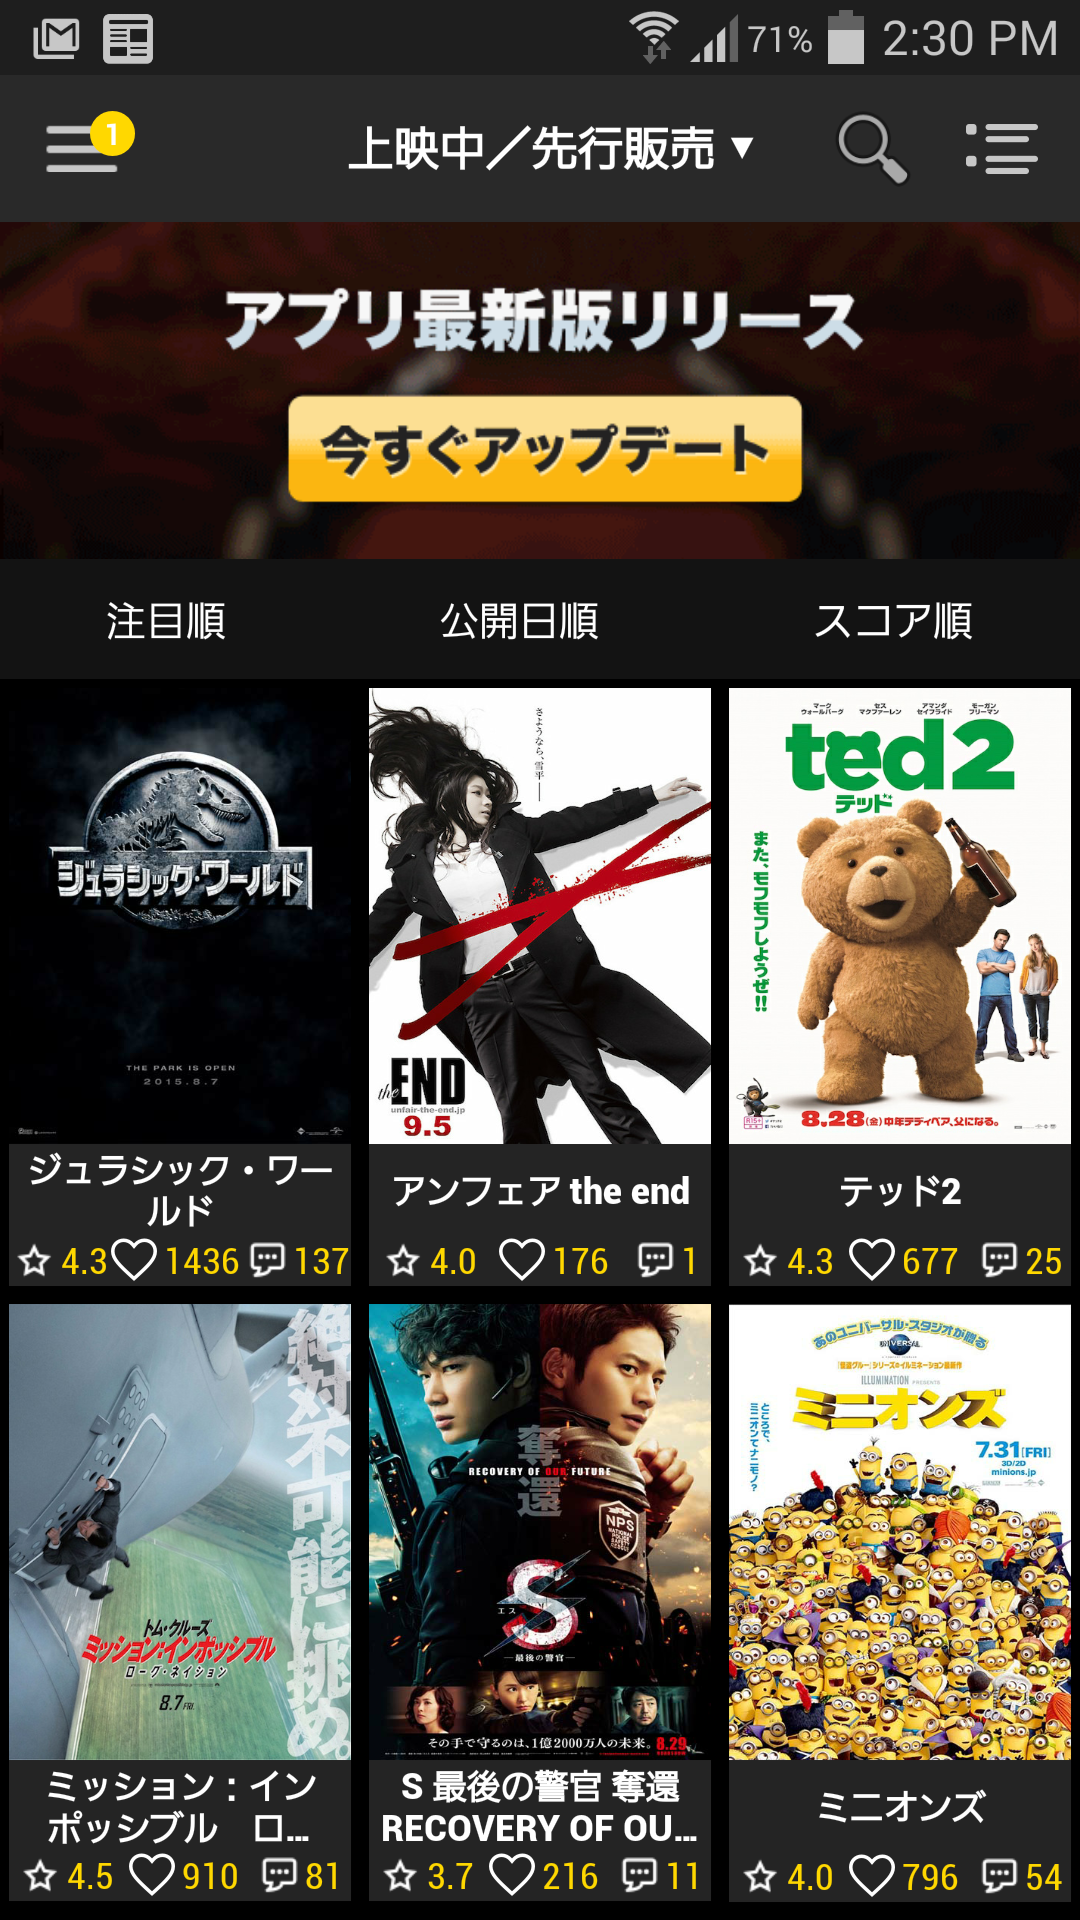 Android・iPhoneアプリ『映画ランド』上映一覧